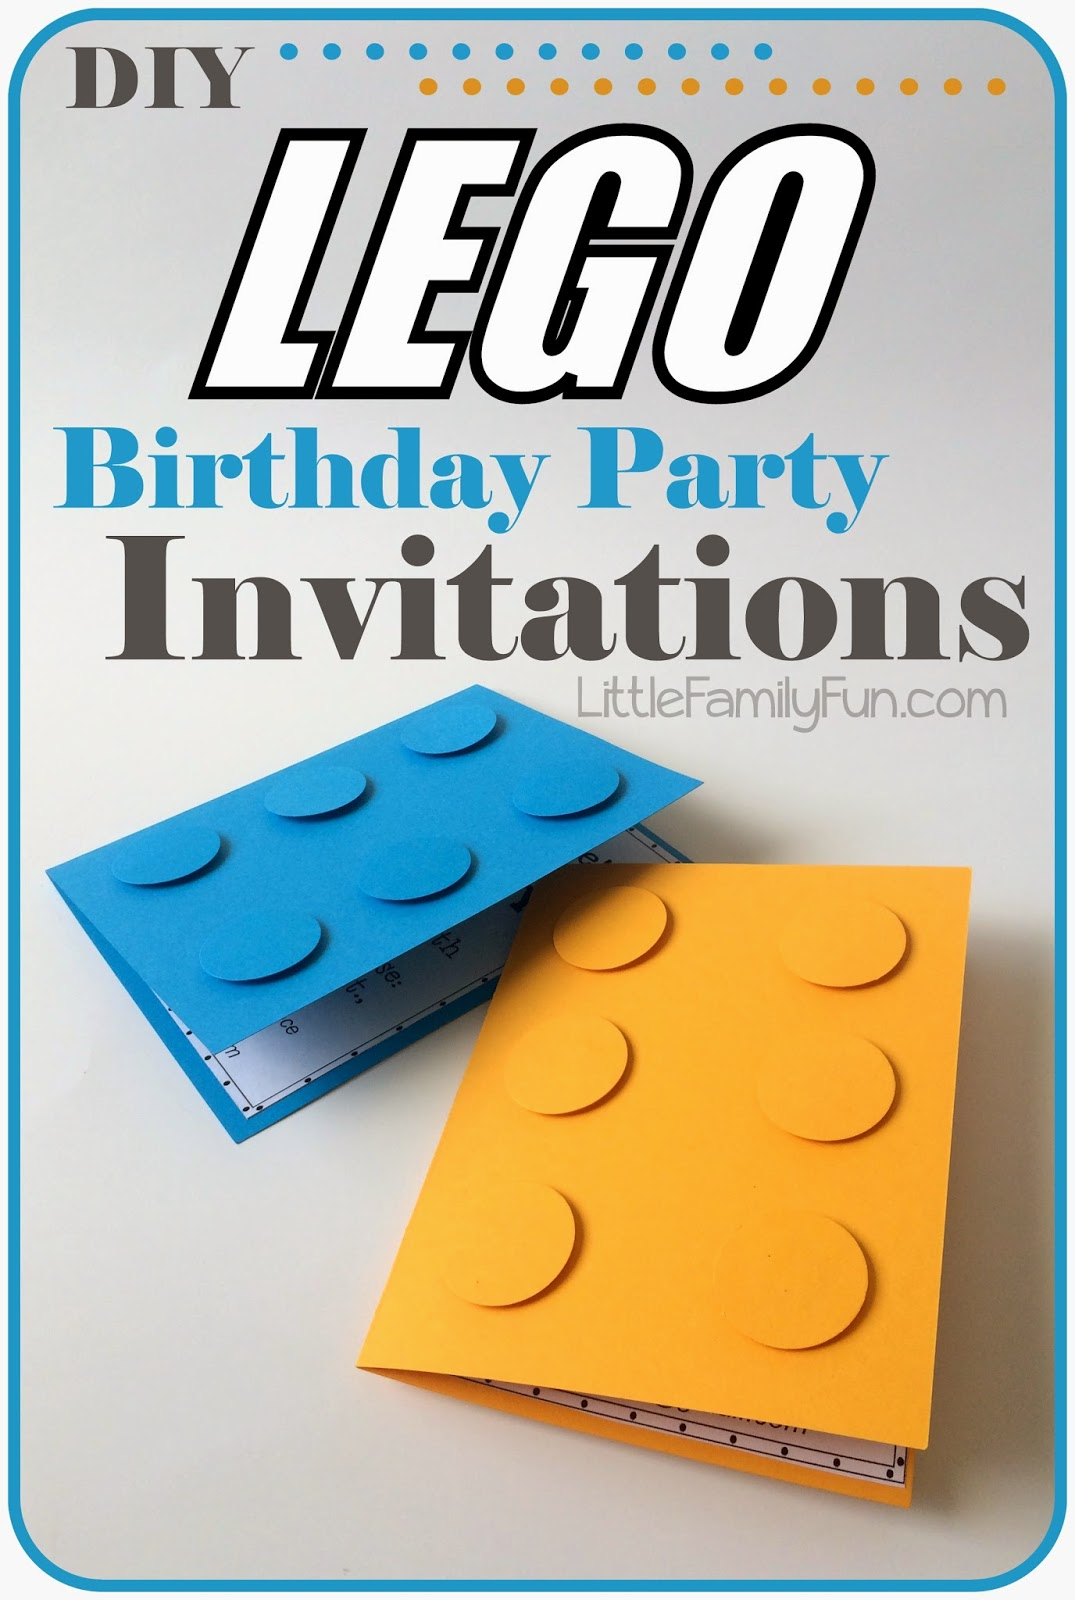 http://www.littlefamilyfun.com/2014/03/lego-party-invitations.html